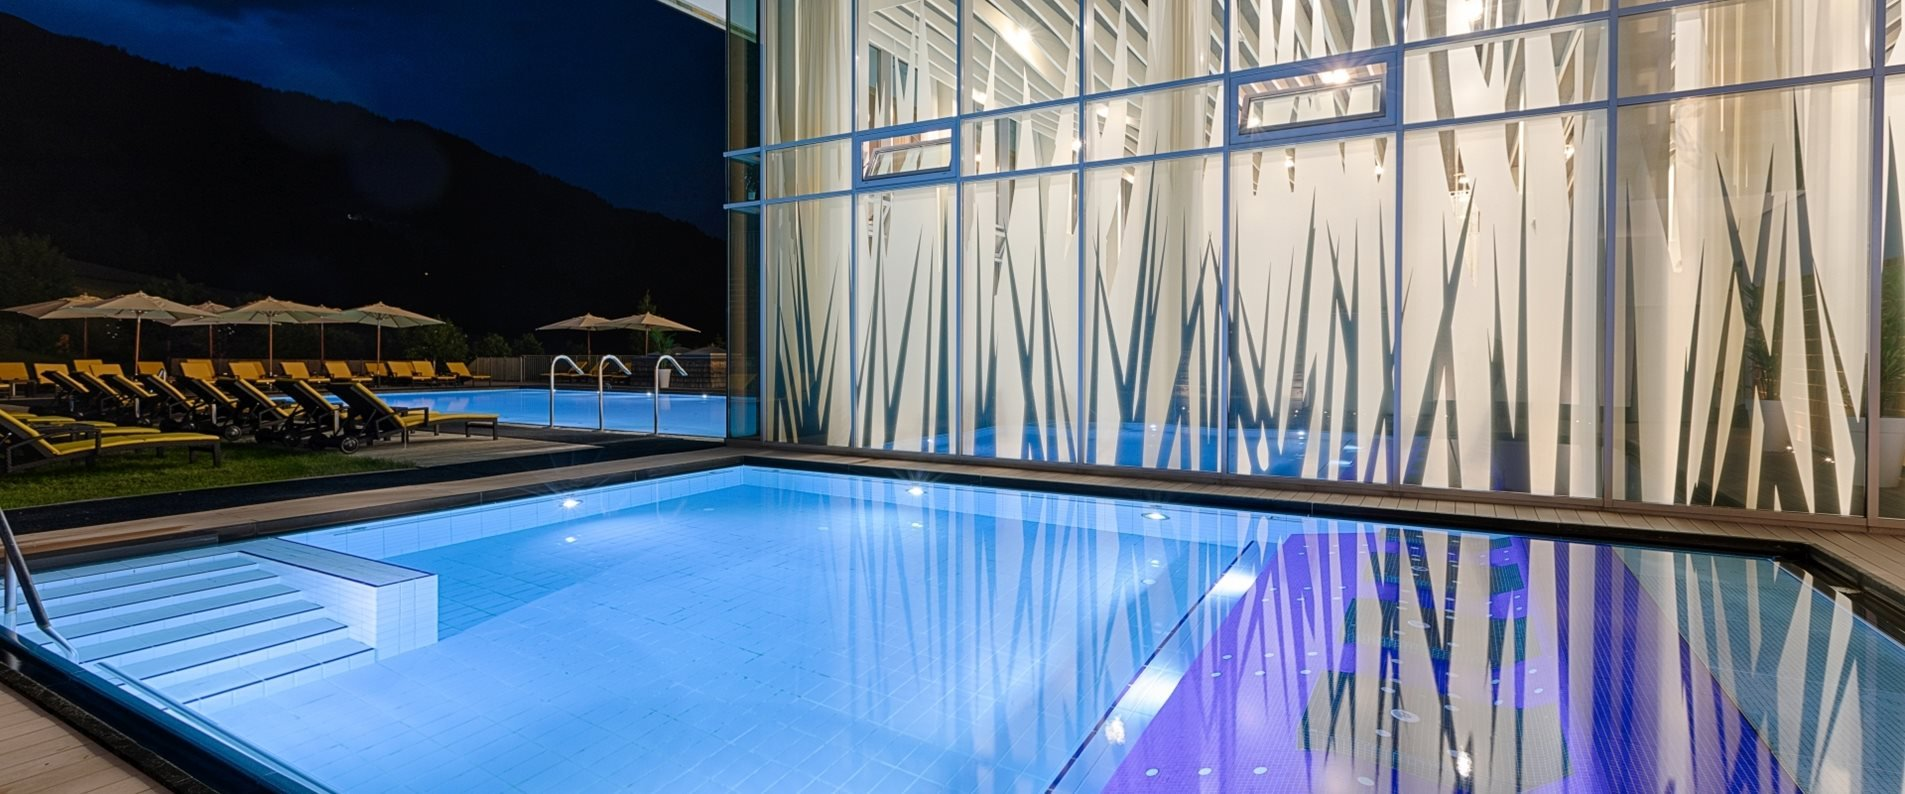 jpeg_kempinski-das-tirol_spa_sole-pool